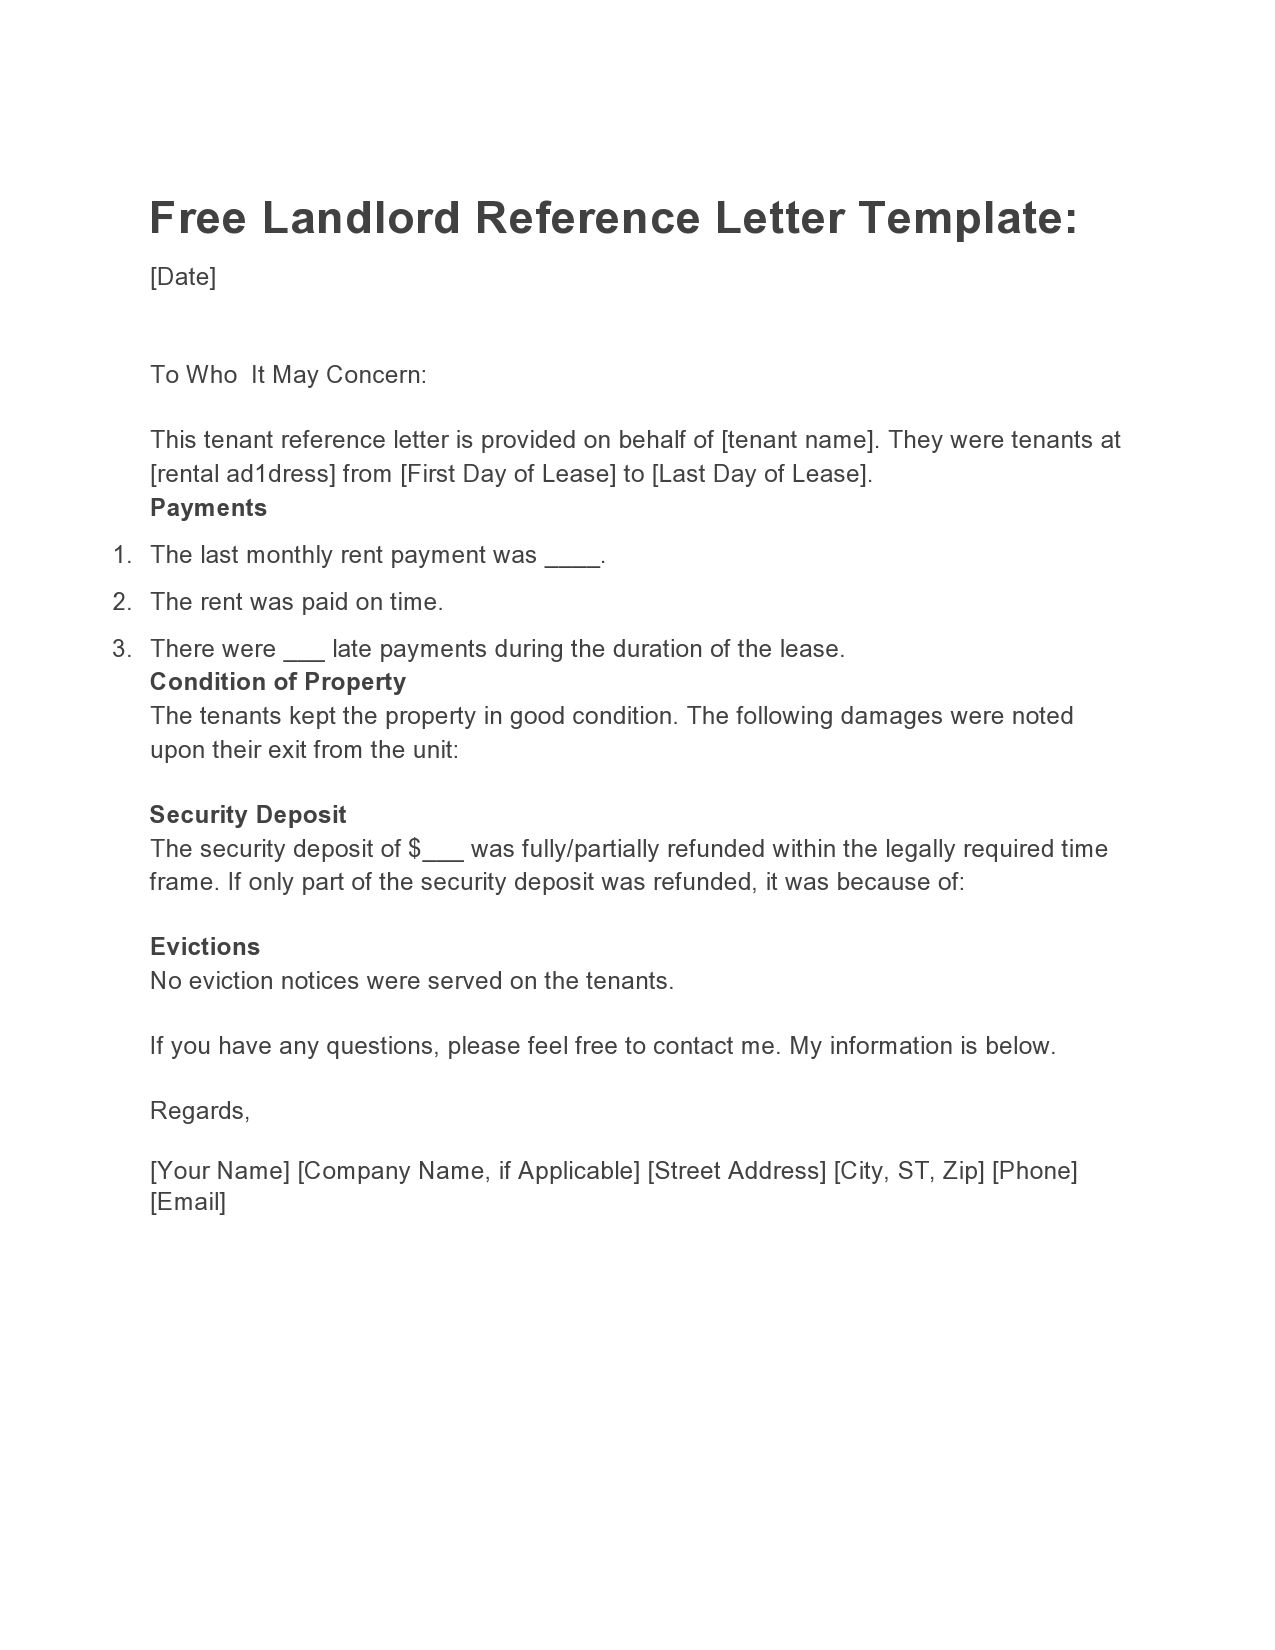 007 Astounding Free Reference Letter Template For Tenant Photo Full